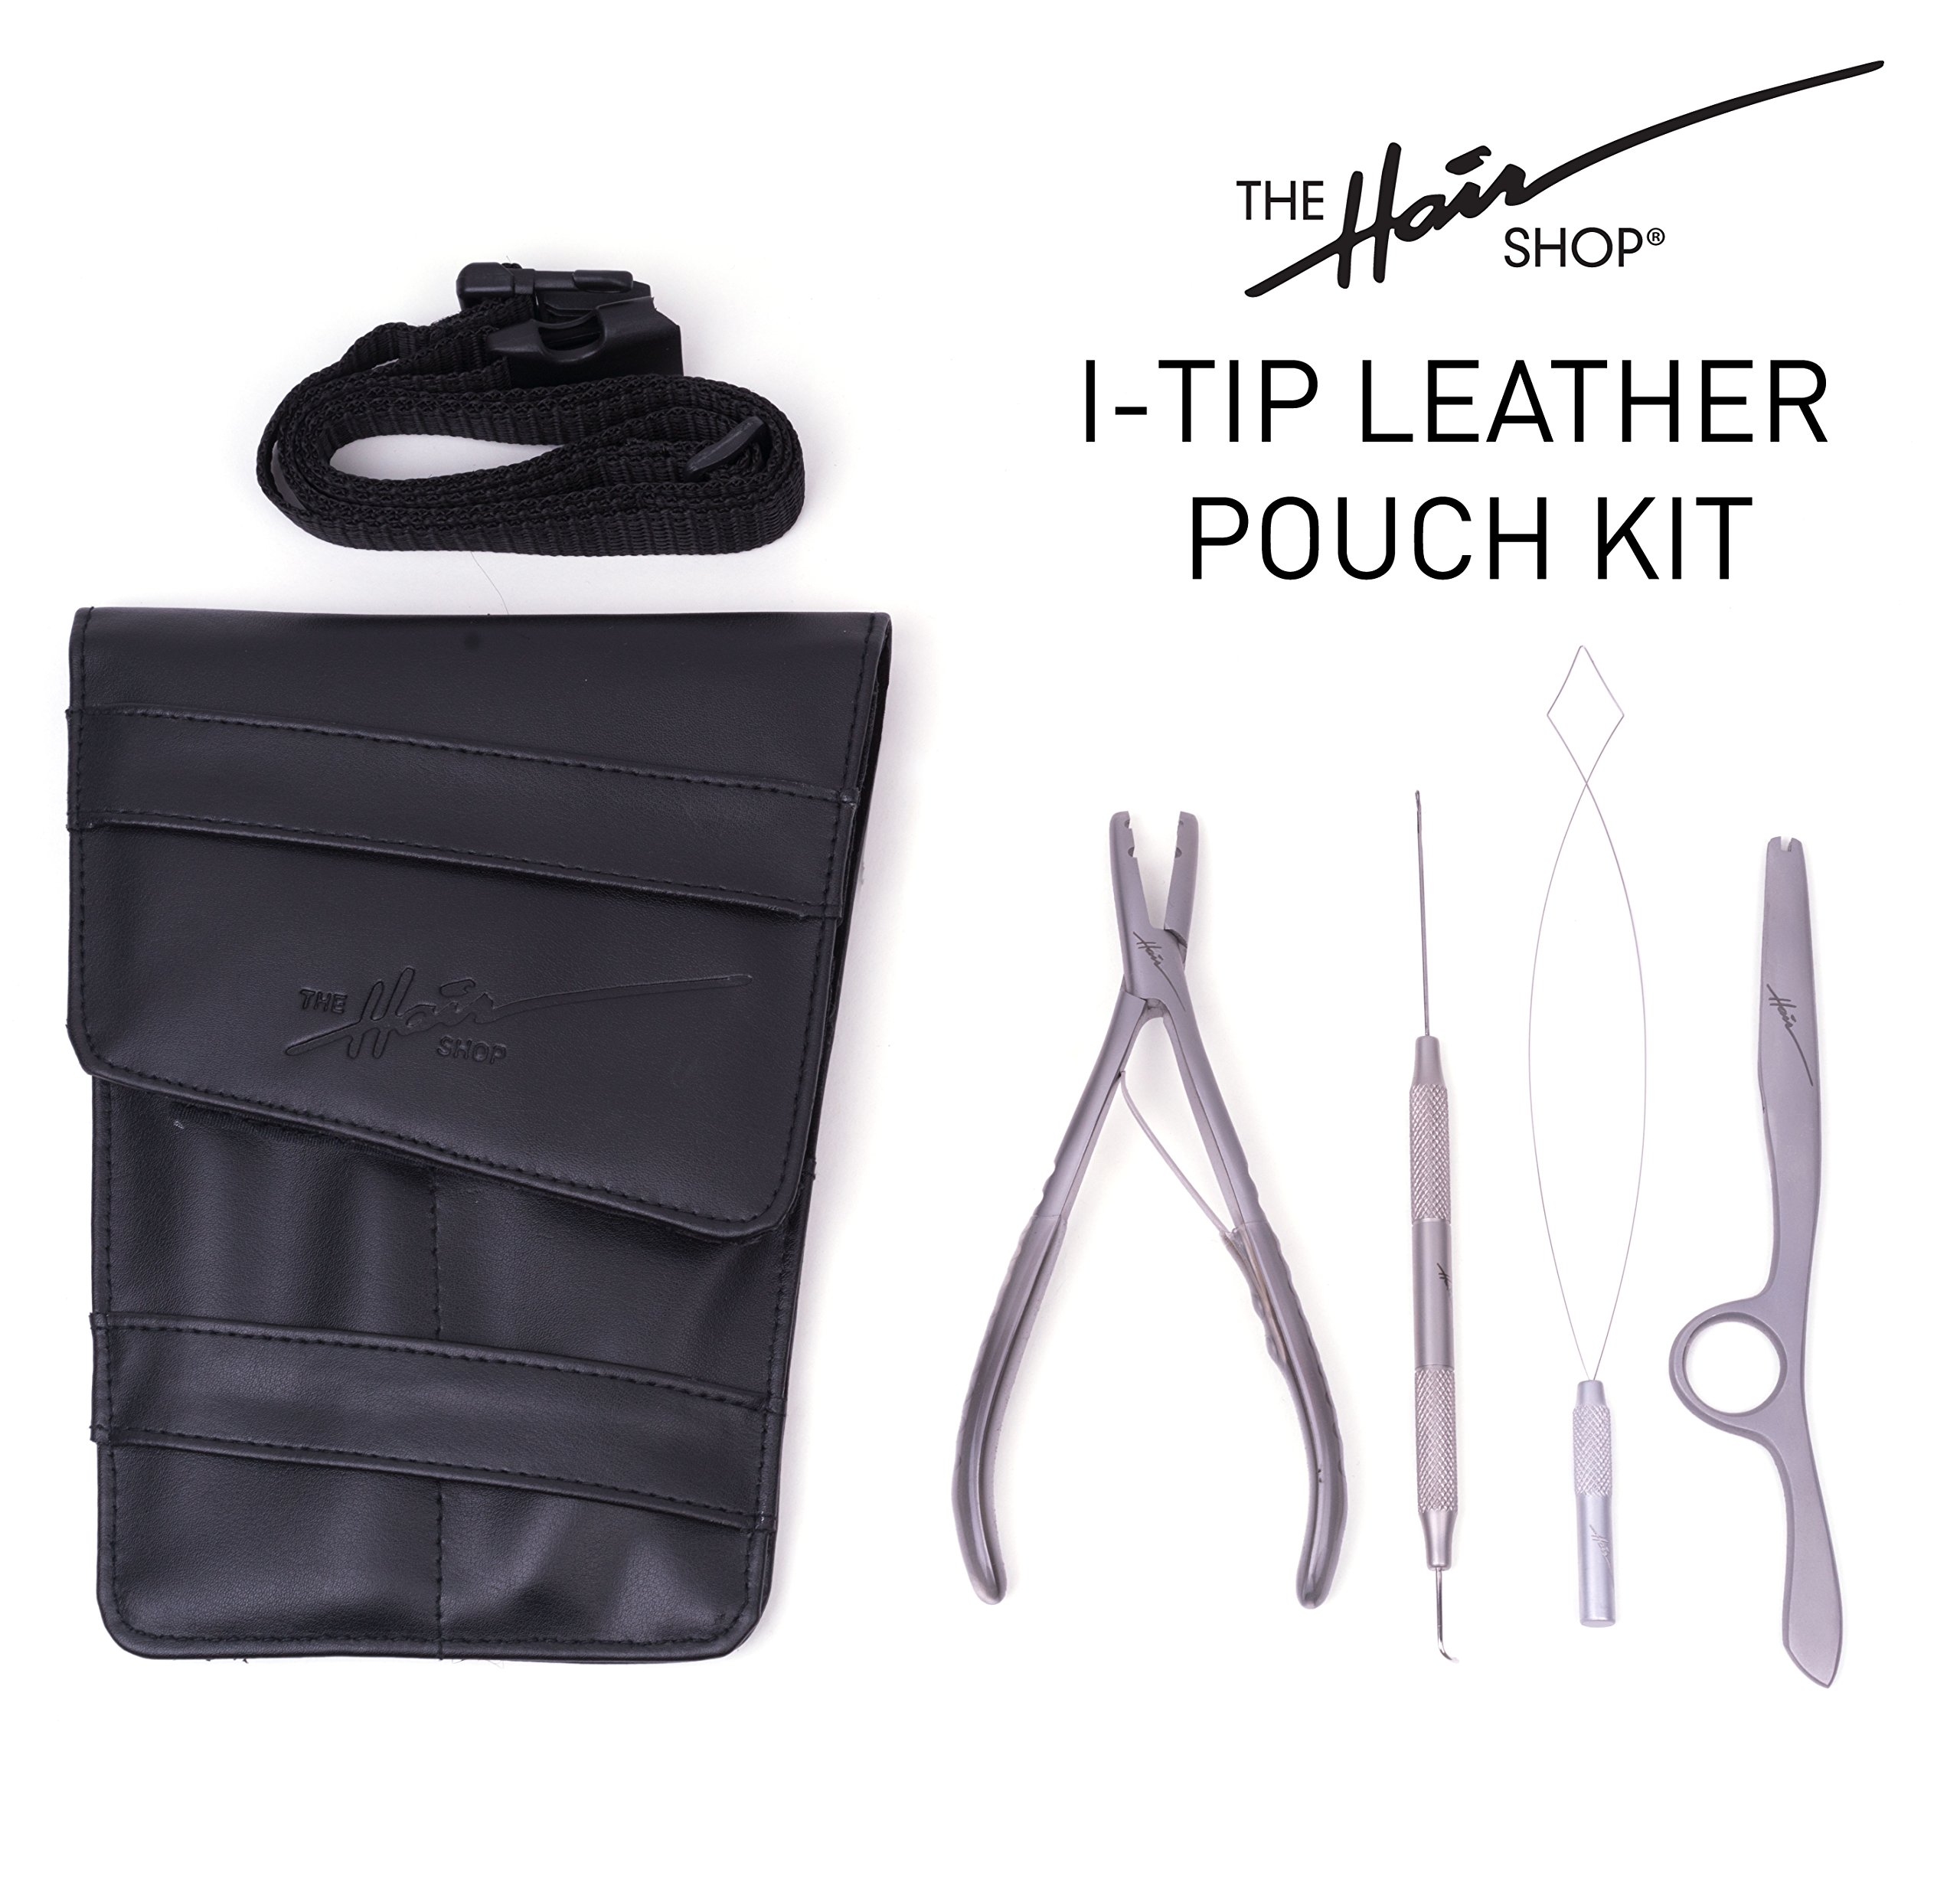 I-Tip Leather Pouch Starter Kit by The Hair Shop - Dual-Function Threading Tool, Loop Threading Tool, Multifunction Plier, Blending Razor, and Leather Pouch w/Belt for Professional Hair Extensions